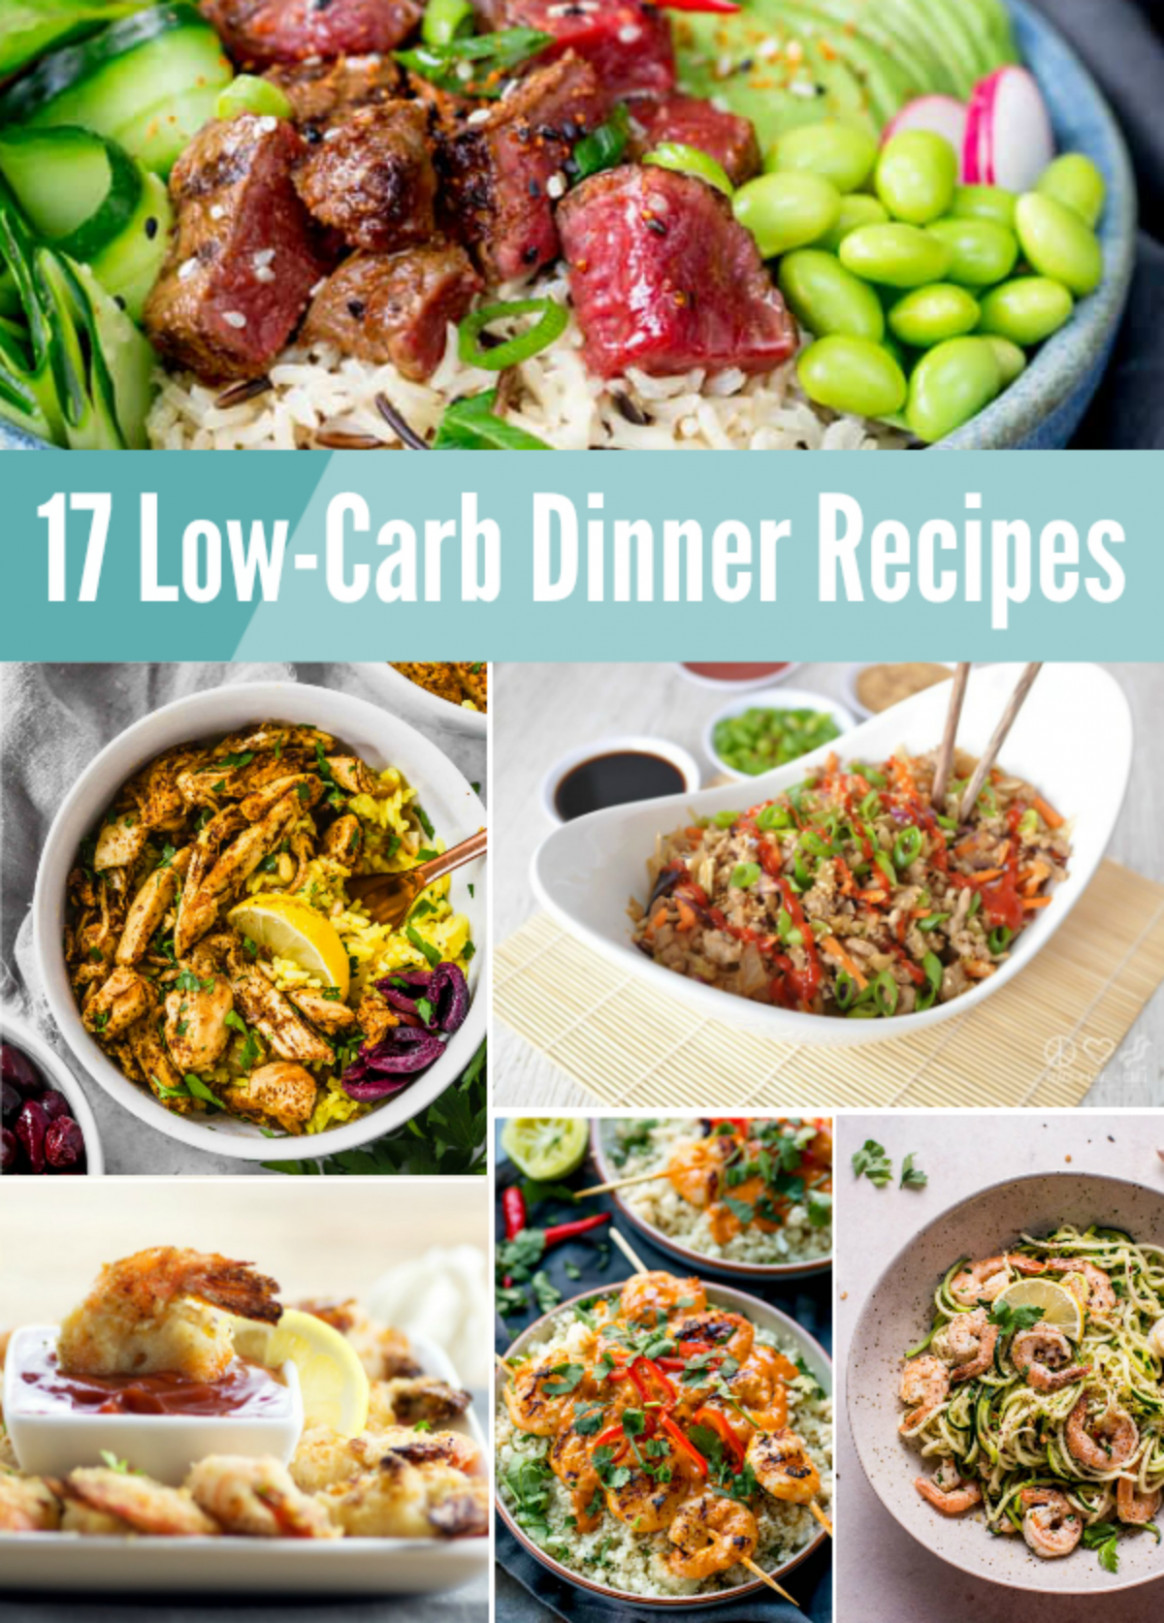 17 Low-Carb Dinner Recipes from MamaMommyMom